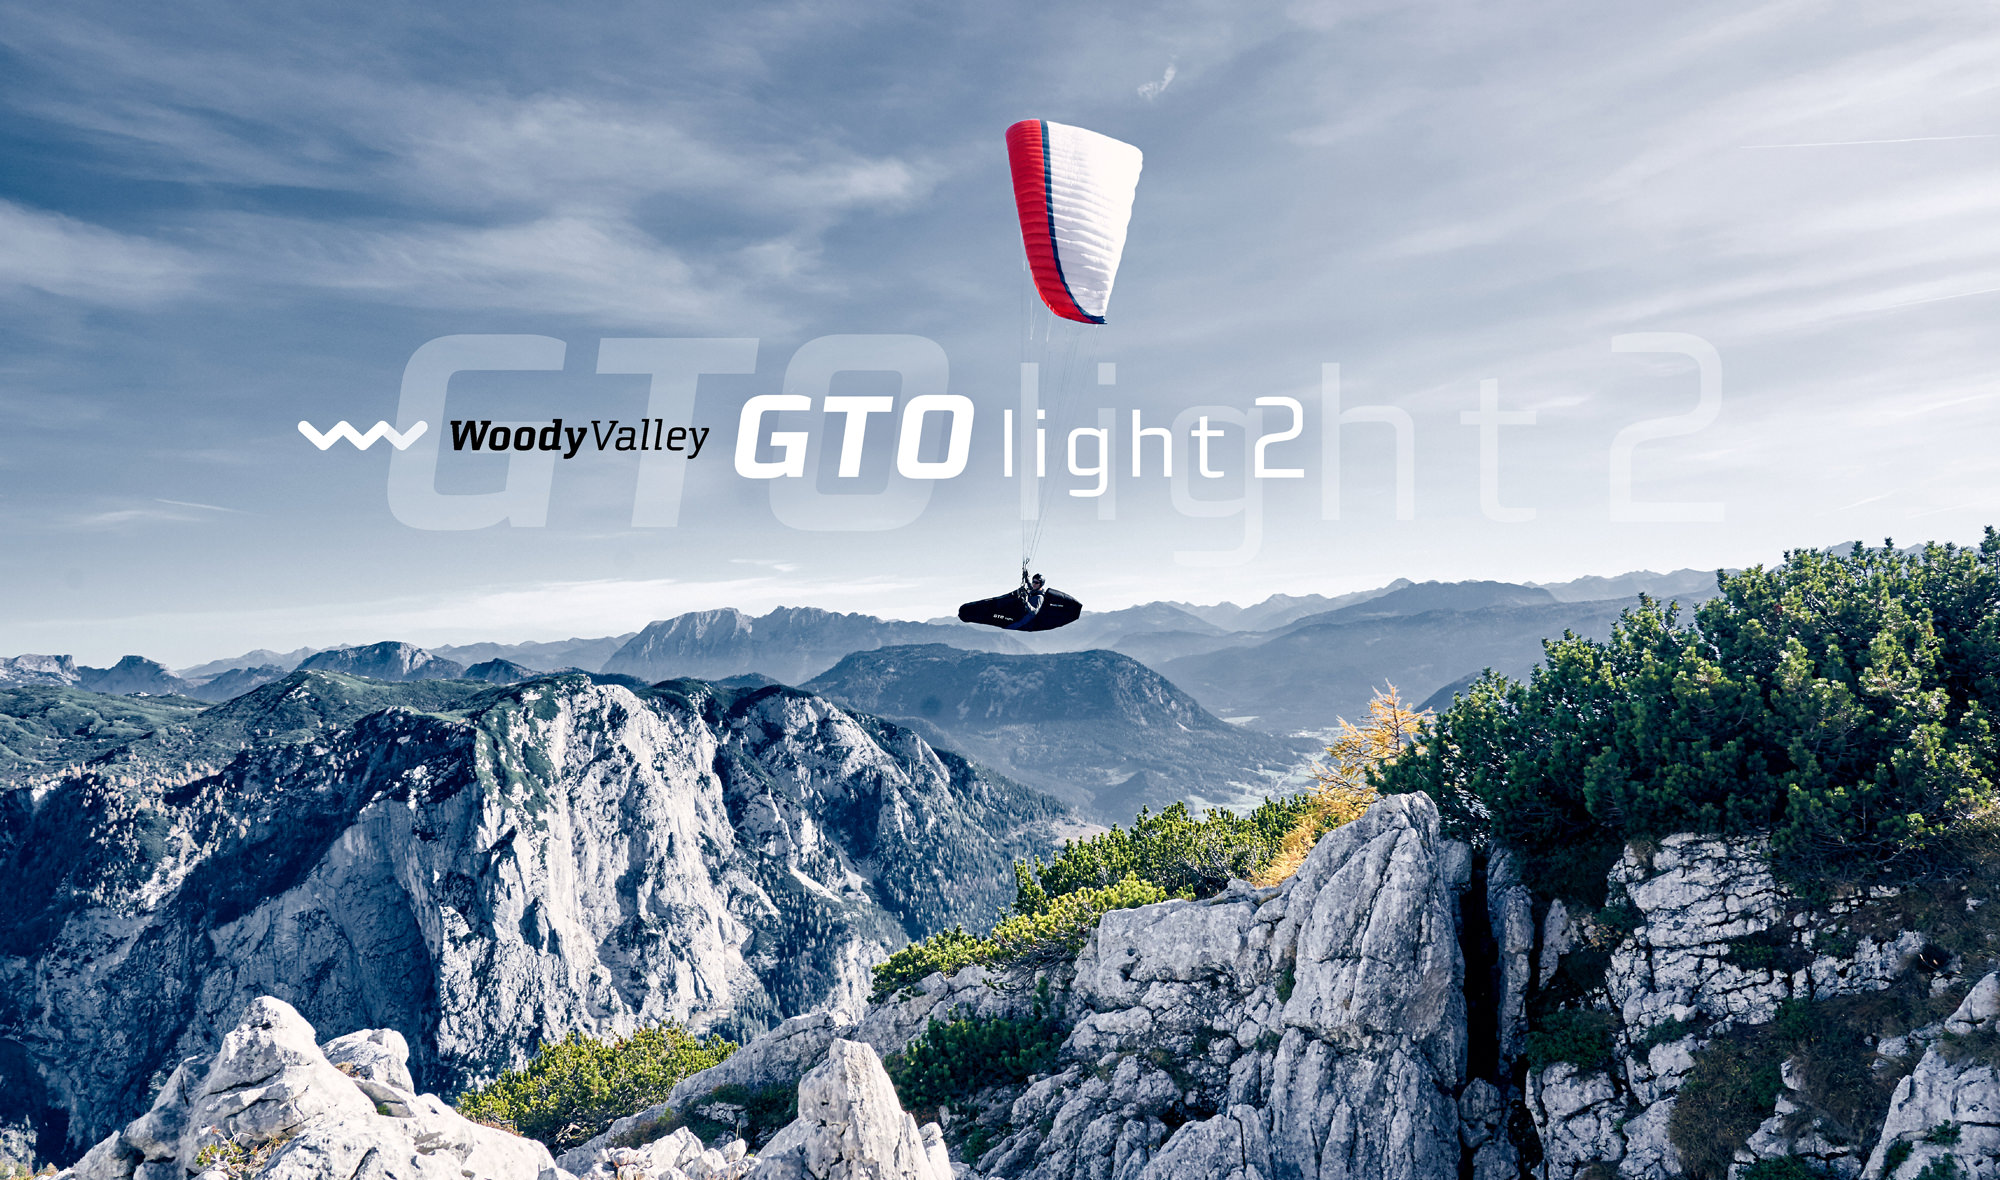 Woody-Valley-GTO-light-2